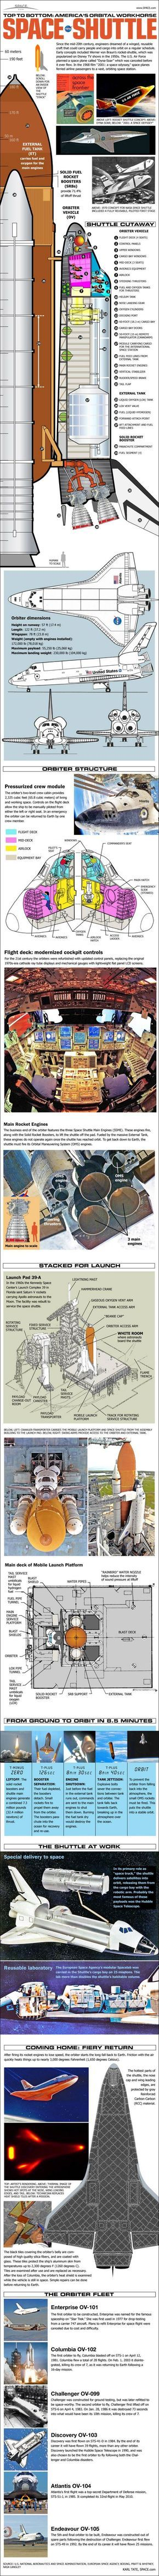 NASA's Space Shuttle – From Top to Bottom (Infographic)  Karl Tate, SPACE.com